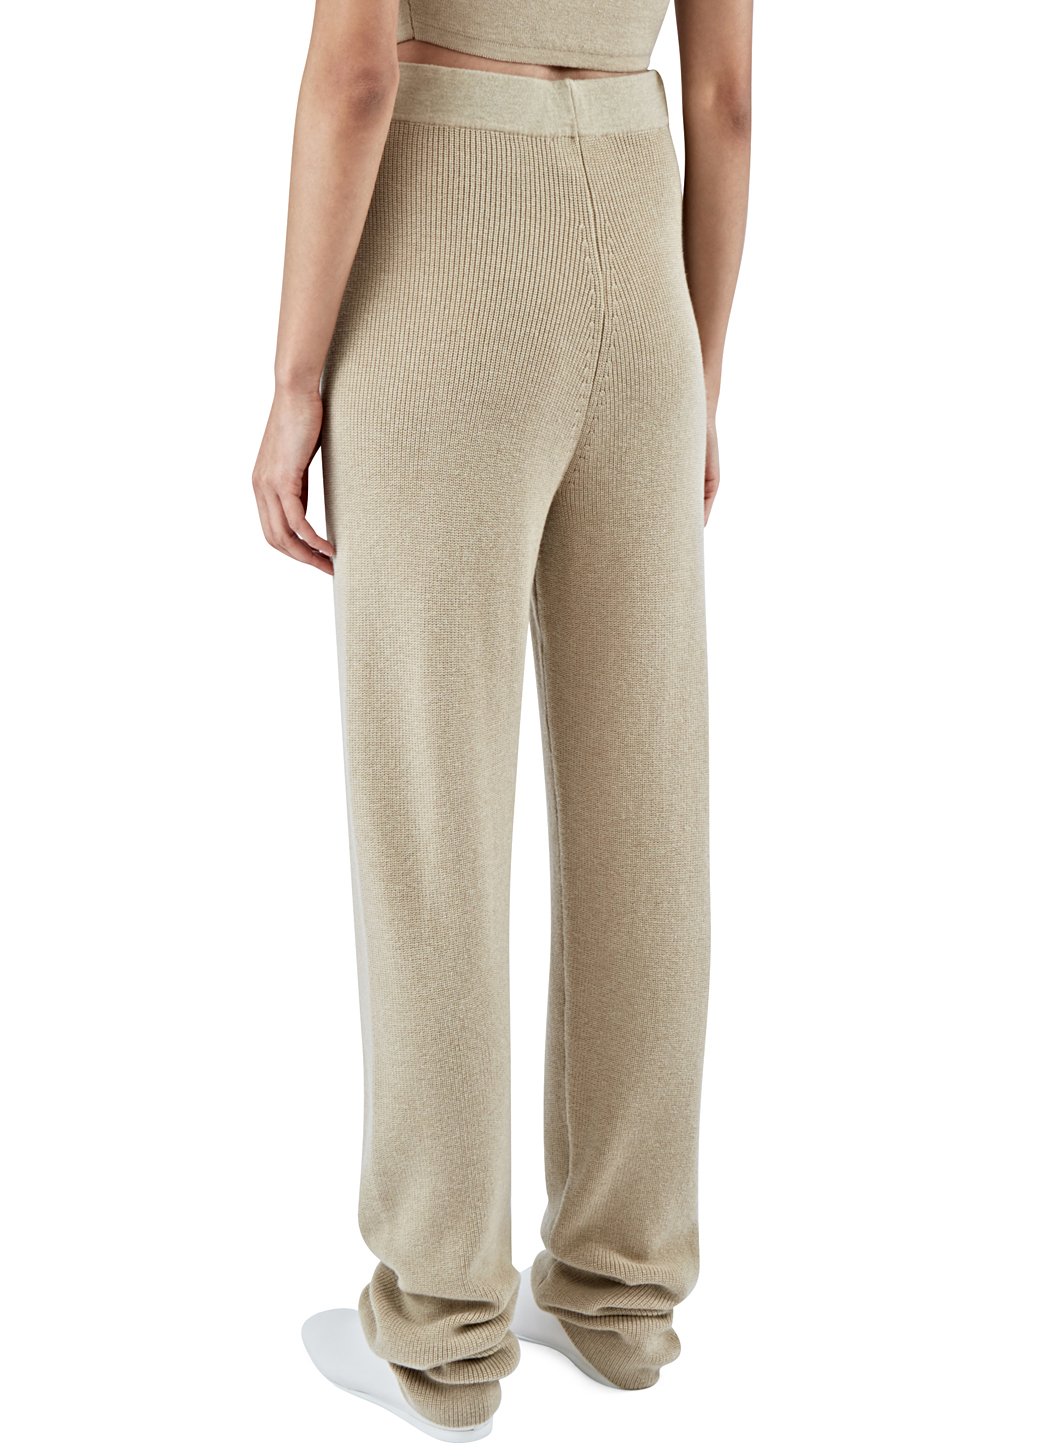 Cool Slim Knit Pant  Knit Pants  JCrew